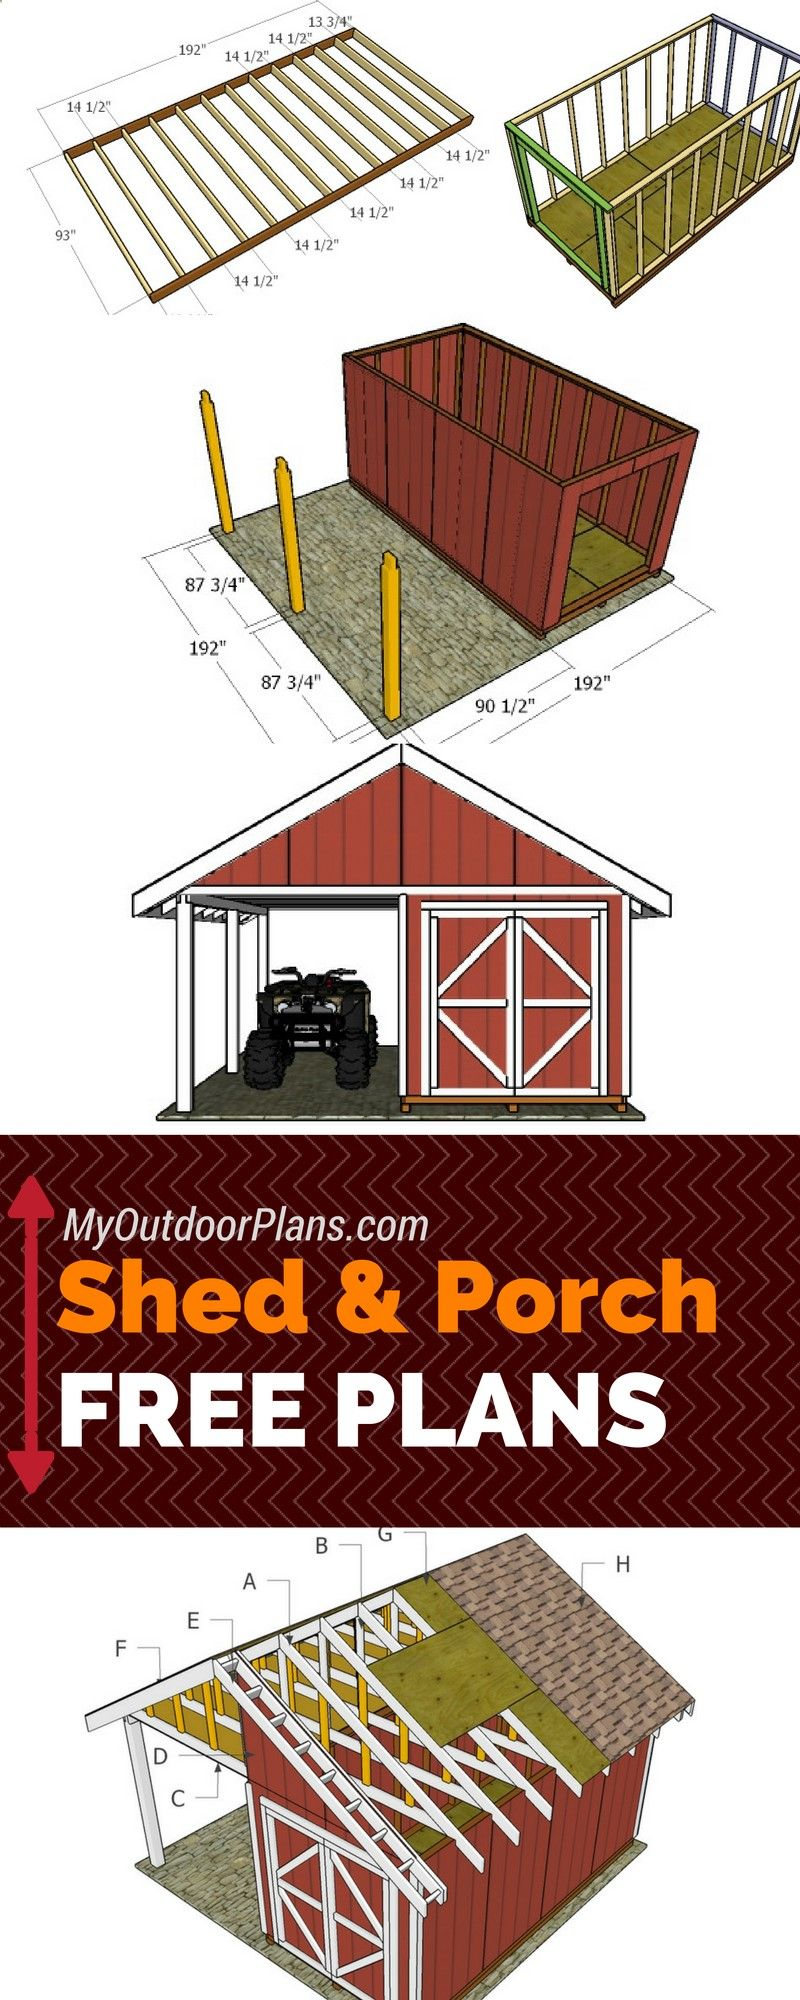 Shed Plans Free shed with porch plans Step by step